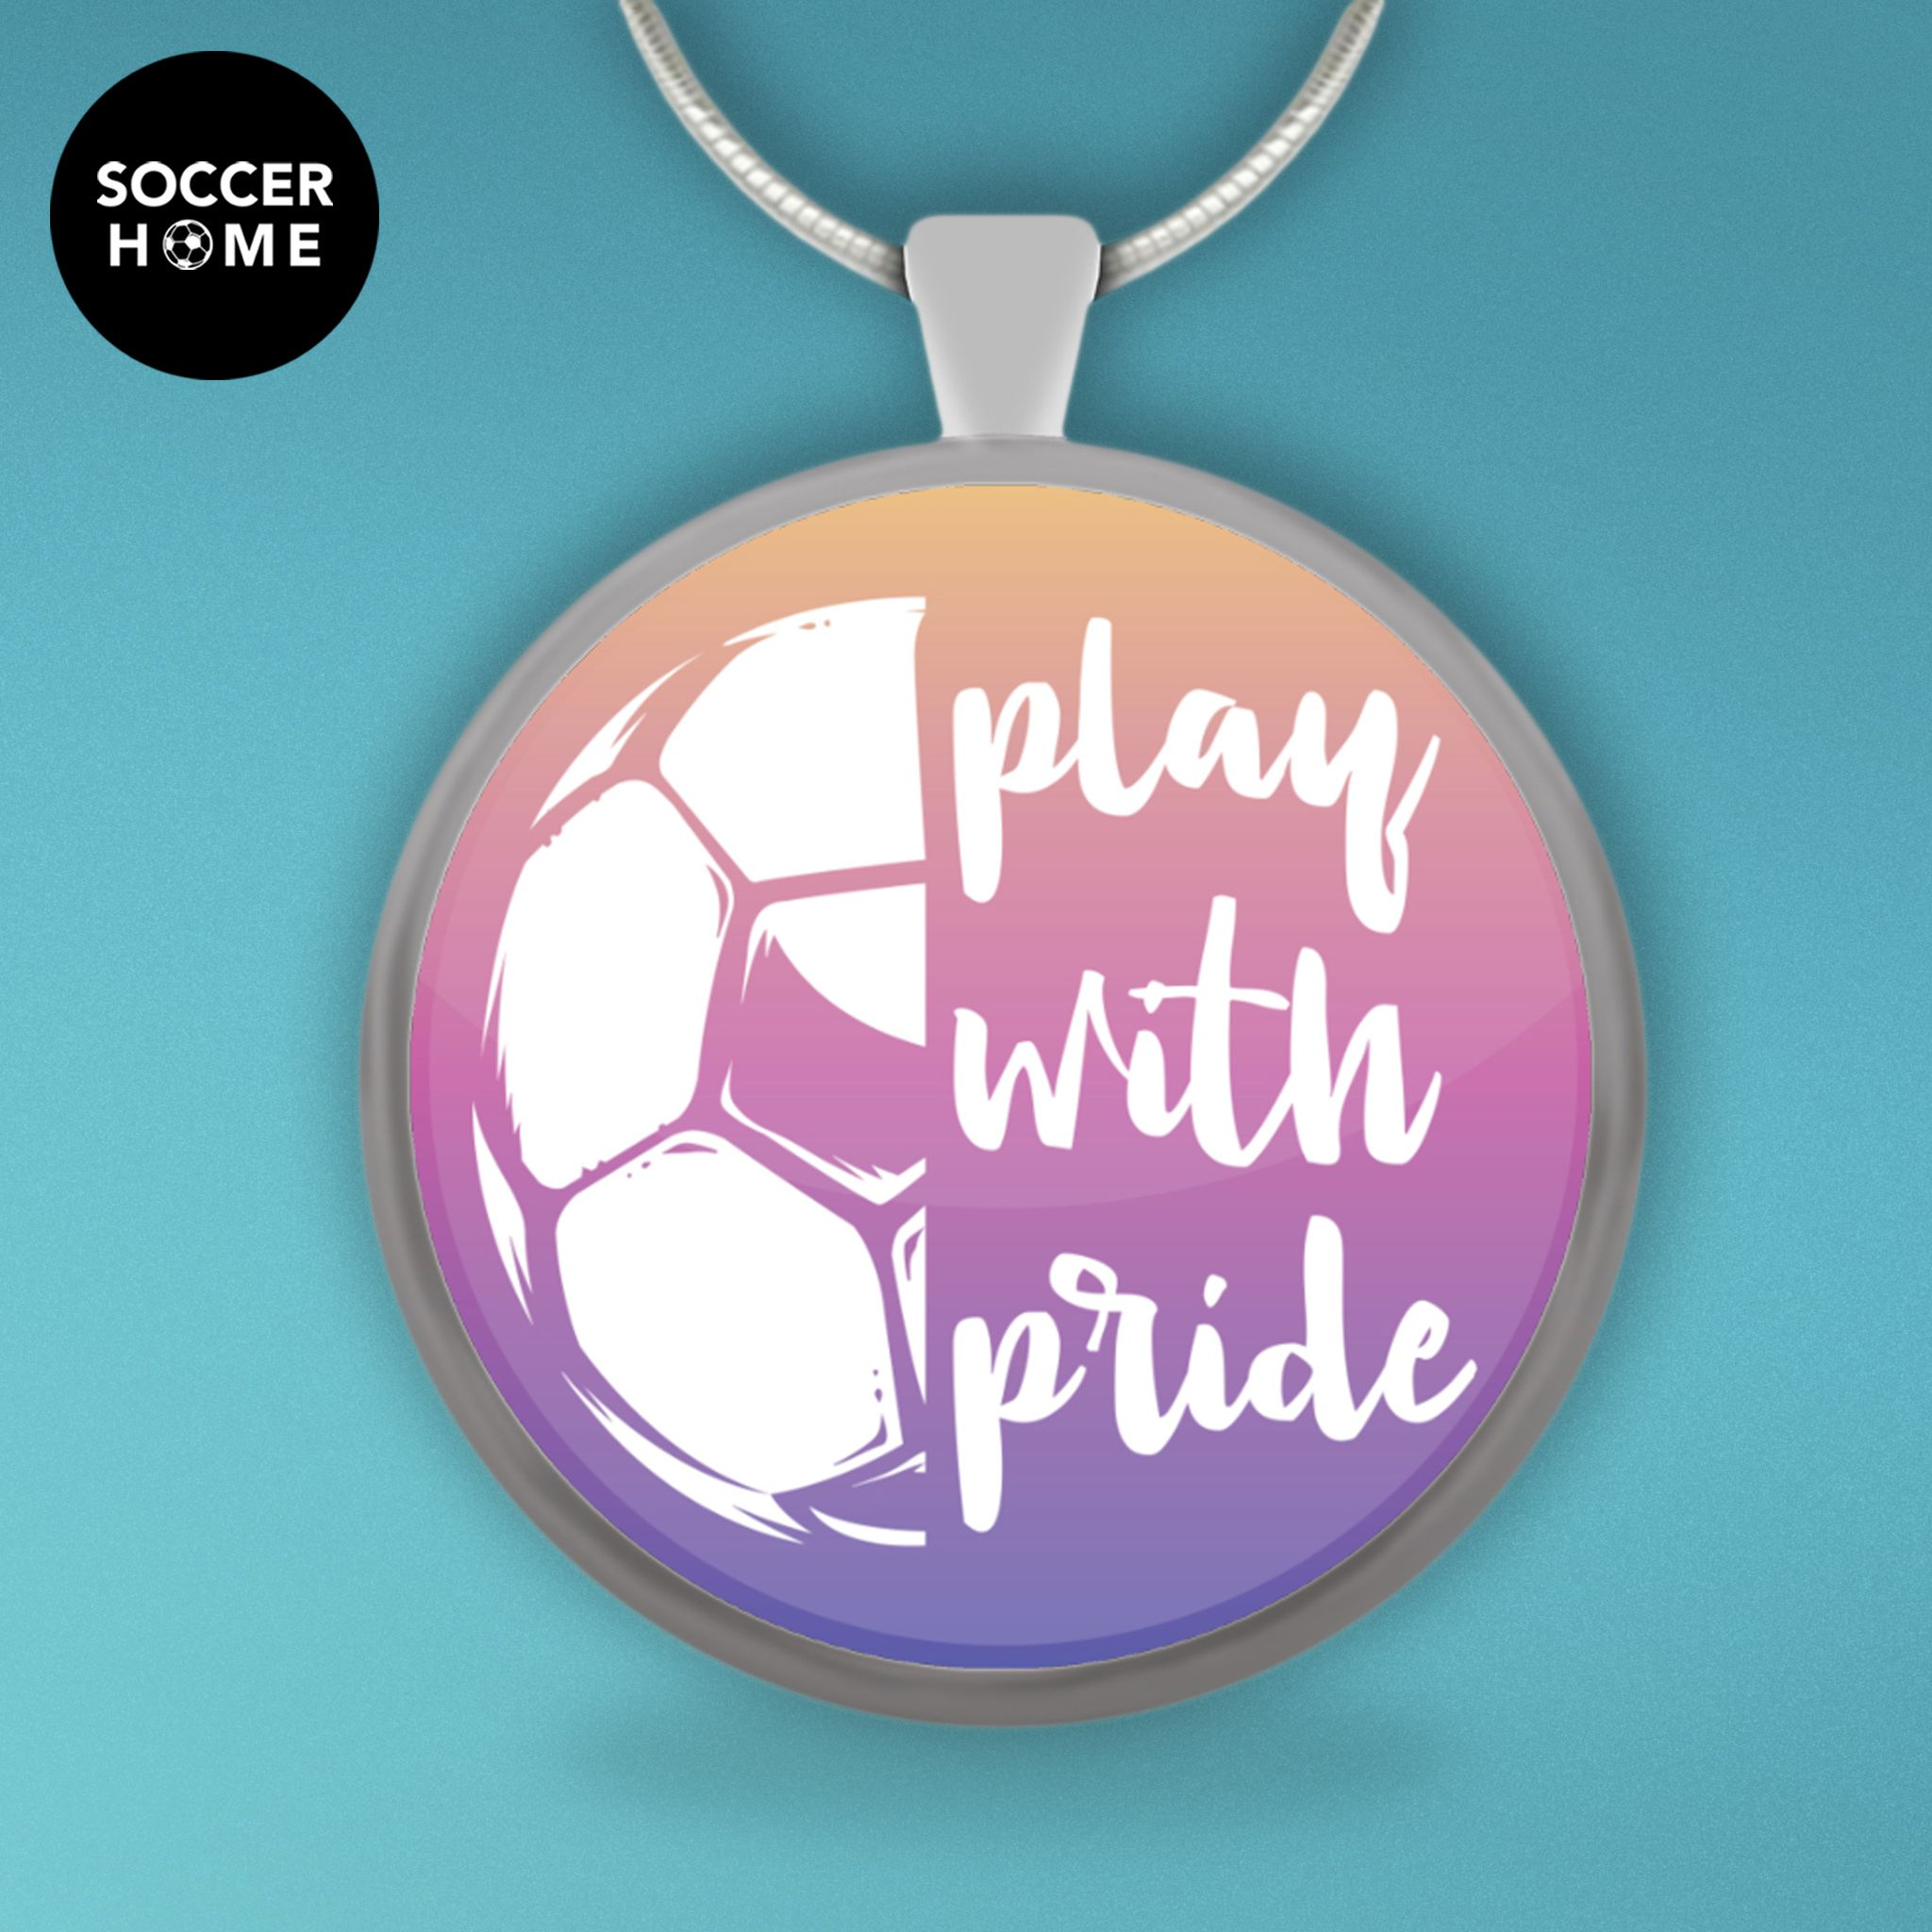 pendant childrens white kitty necklace img children s kristinpearce products soccer